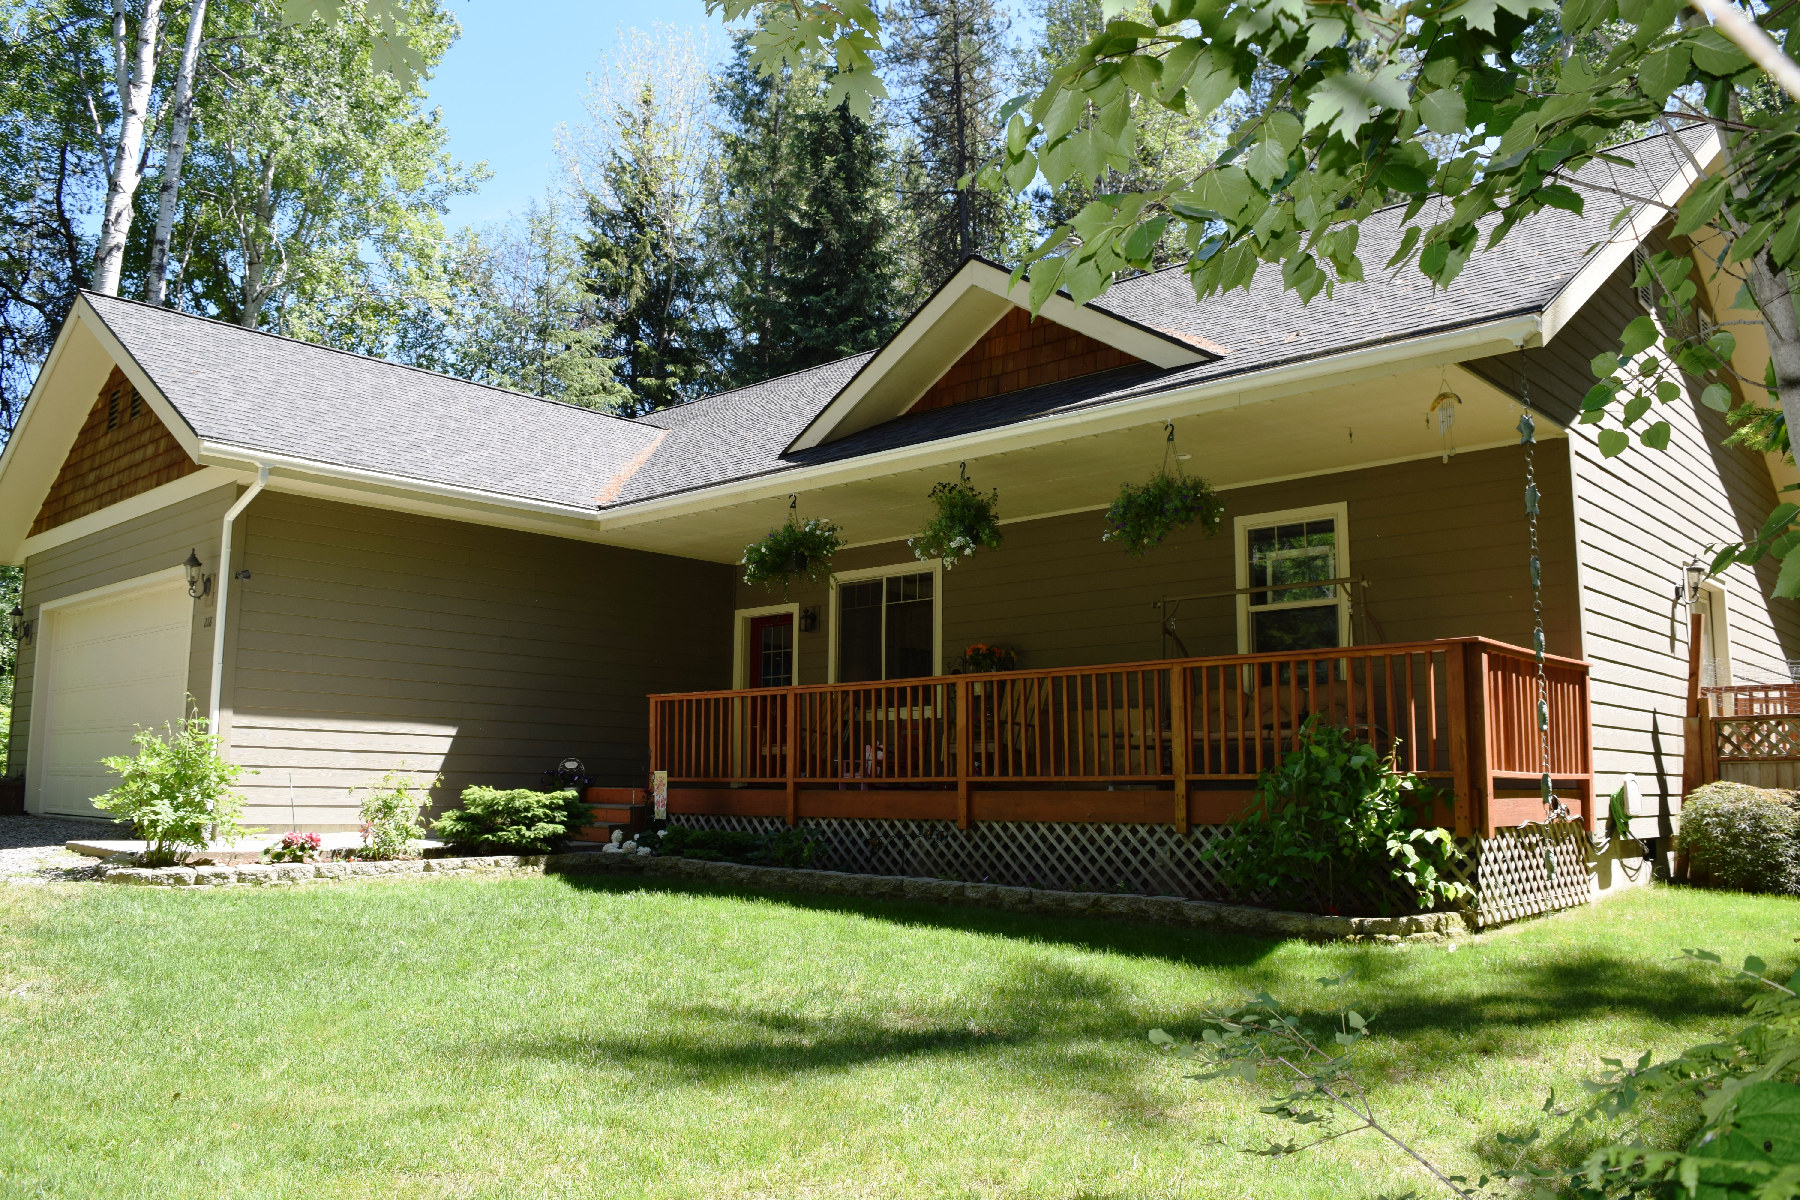 Single Family Home for Sale at Newer, custom single level home 218 Colburn Culver Rd Sandpoint, Idaho, 83864 United States